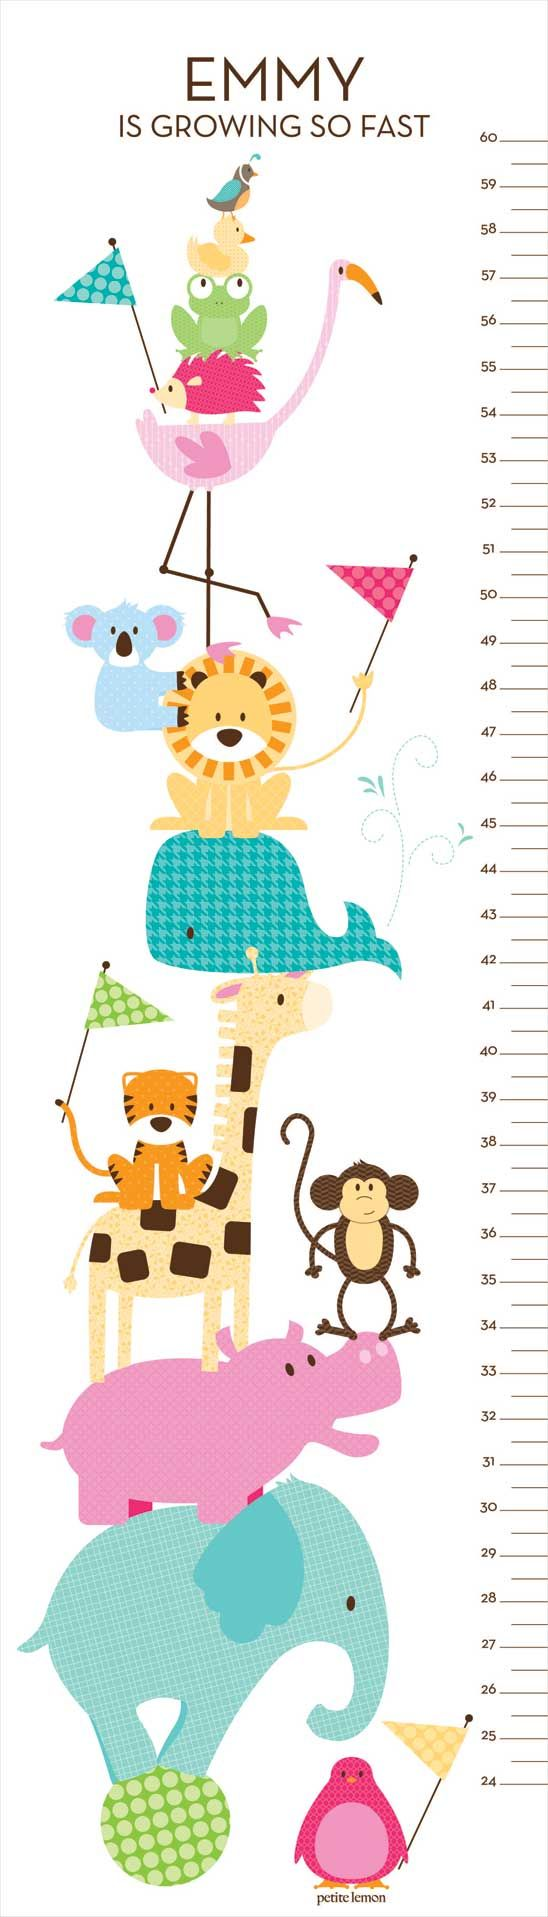 Best 25 personalized growth chart ideas on pinterest child fun animal themed personalized growth chart frog nvjuhfo Choice Image